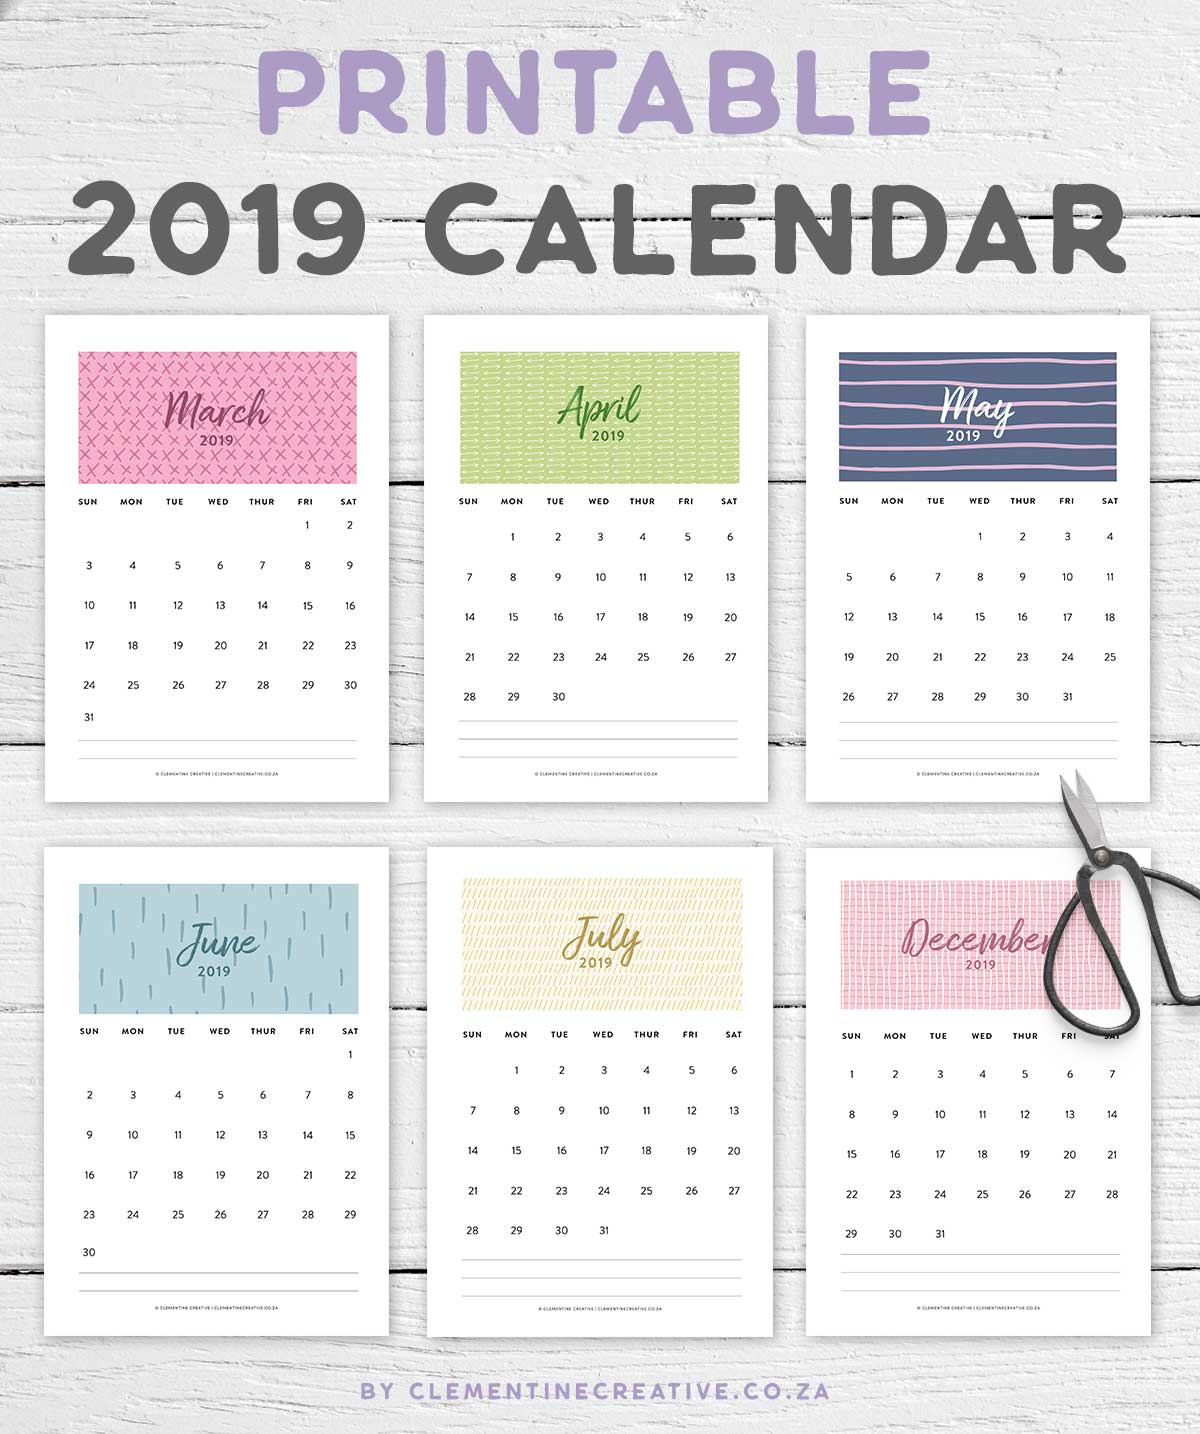 photo regarding Pretty Printable Calendar known as Printable 2019 Calendar A Very Month to month Calendar